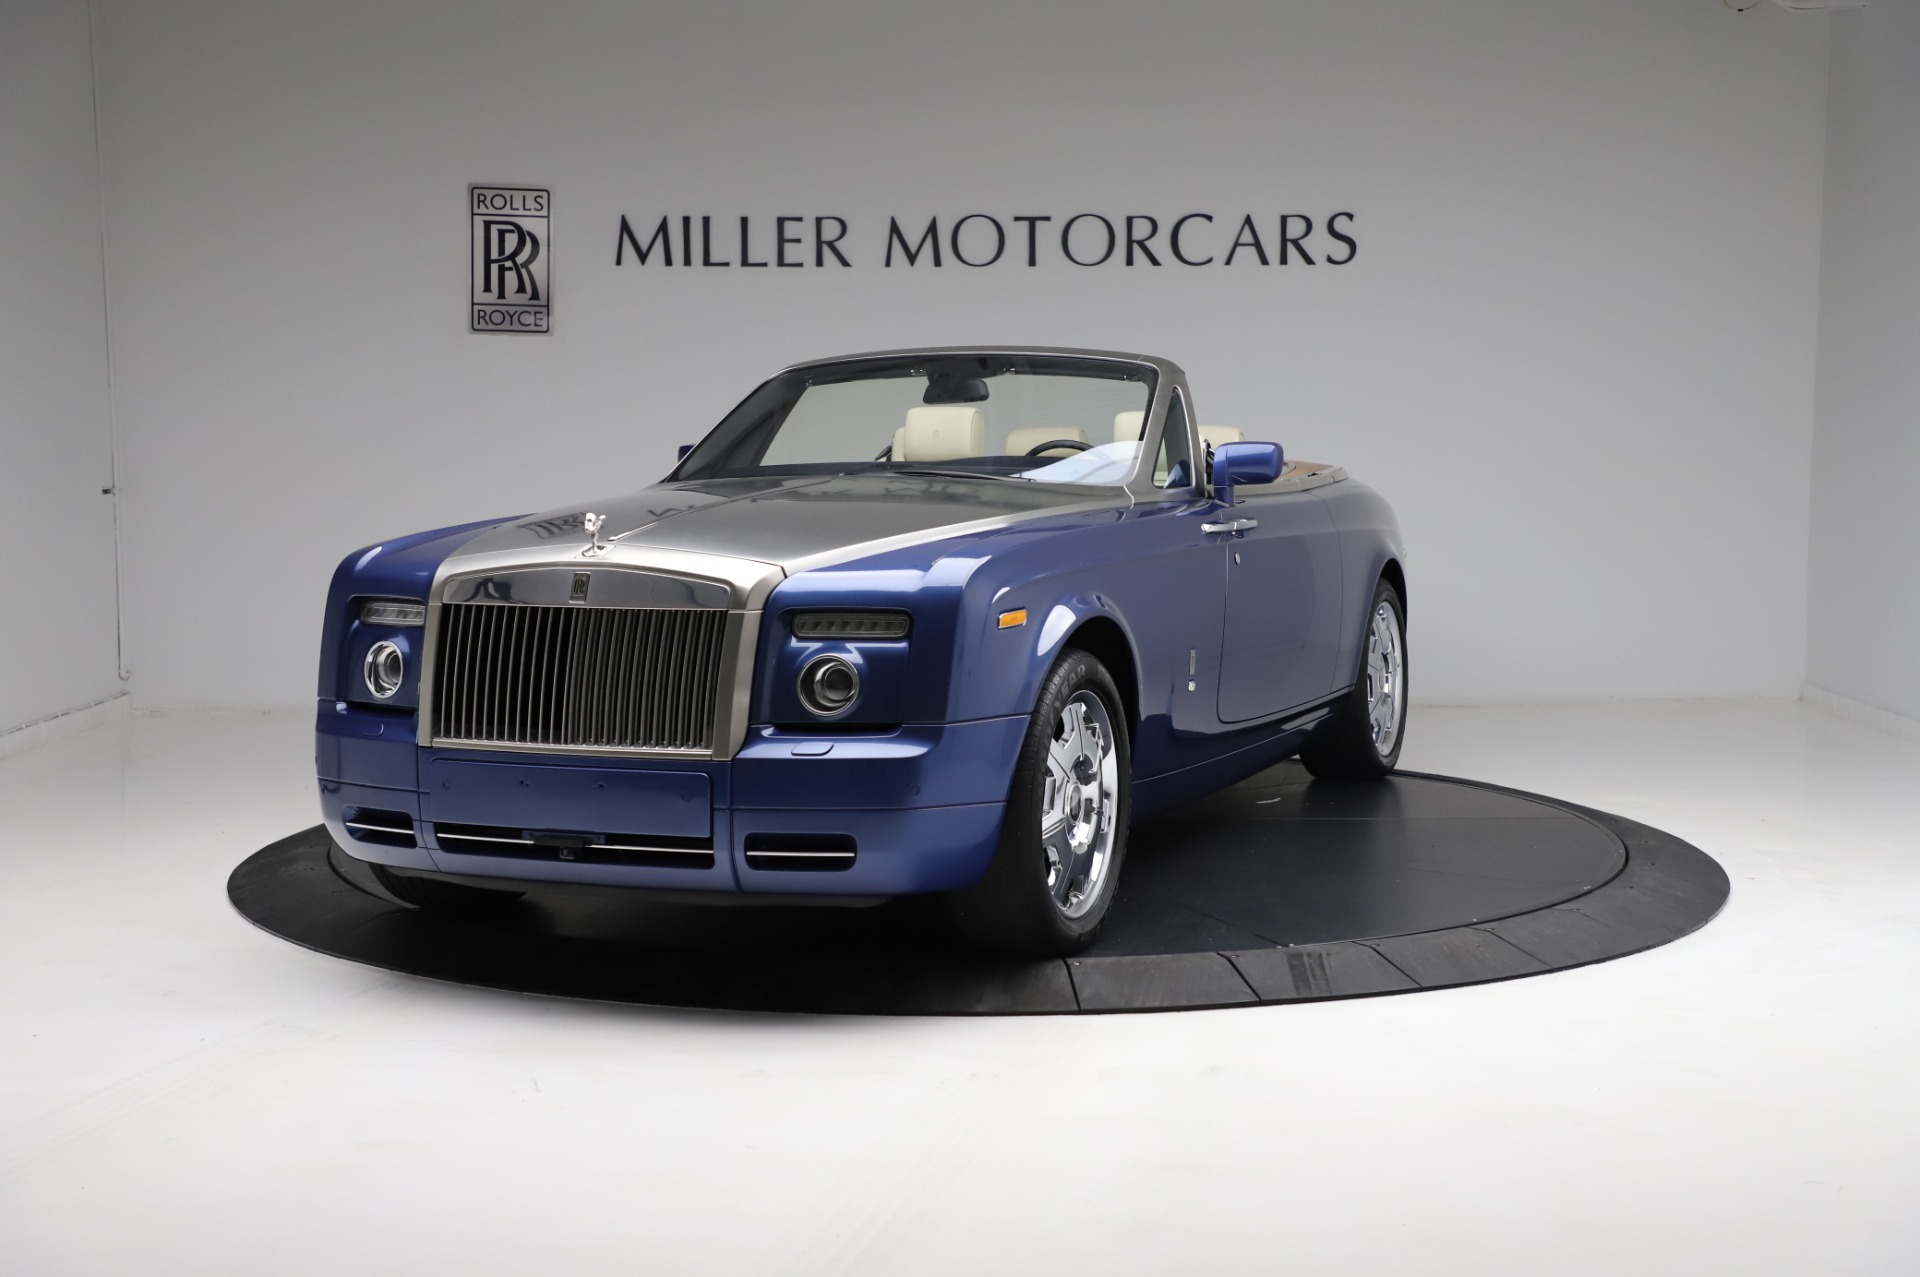 Used 2009 Rolls-Royce Phantom Drophead Coupe for sale $219,900 at McLaren Greenwich in Greenwich CT 06830 1